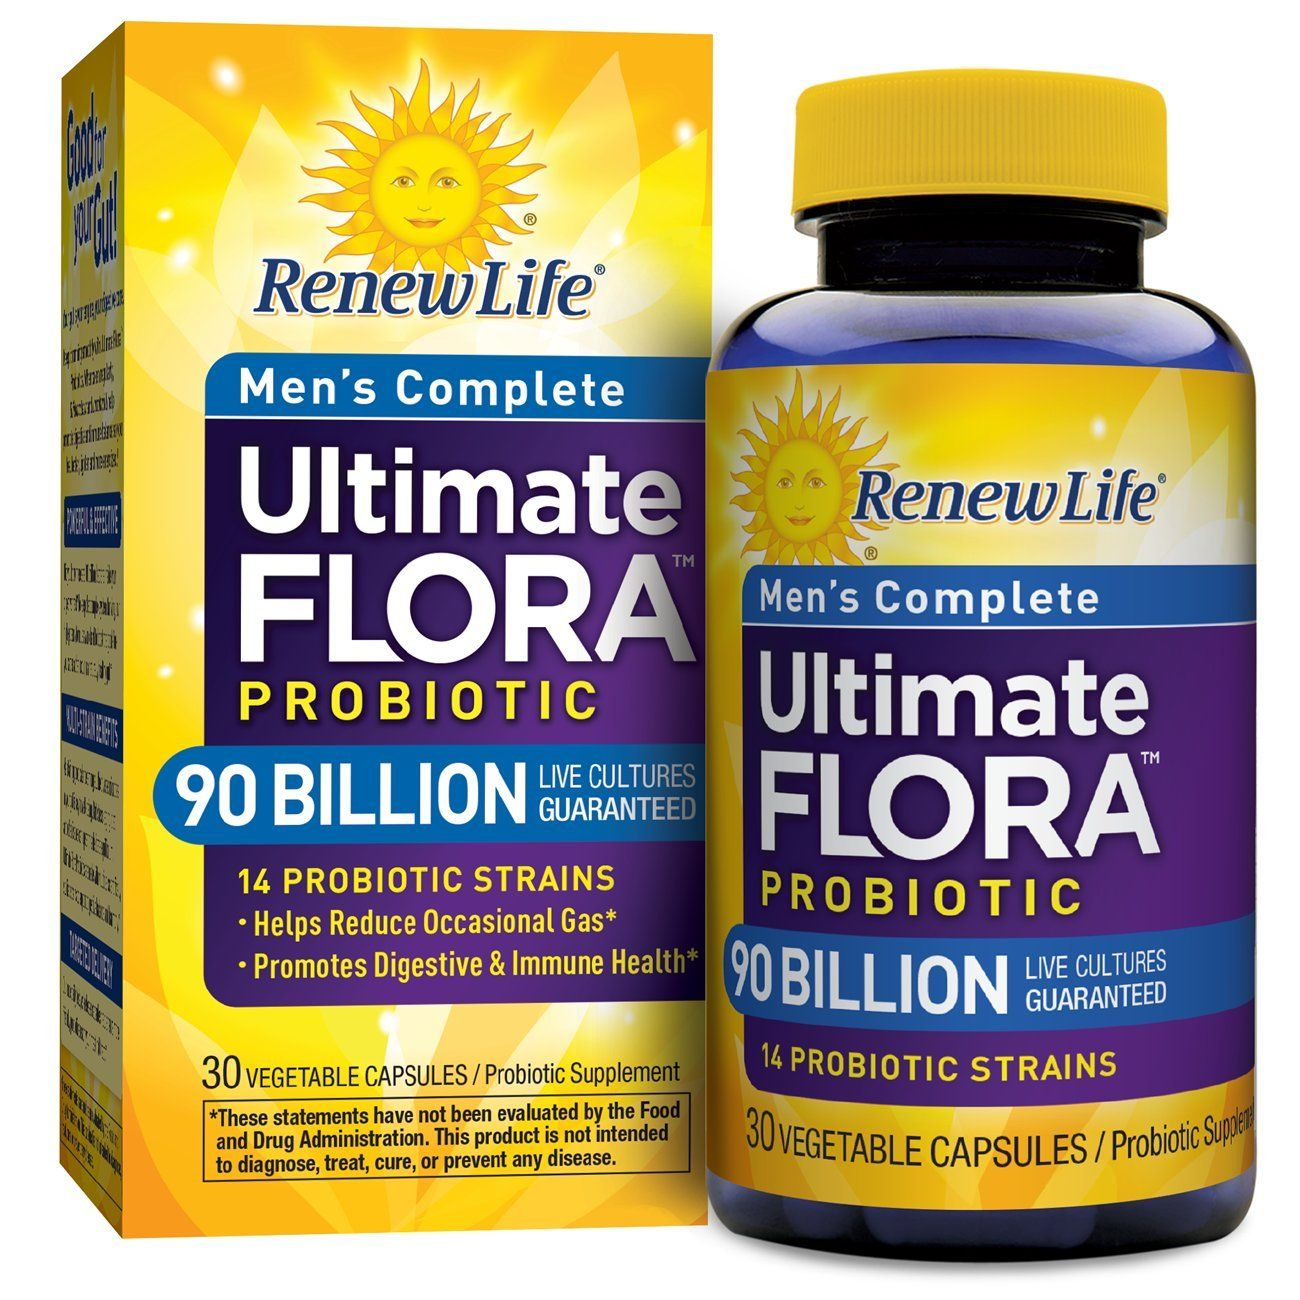 Renew Life Ultimate Flora Probiotic Men S Complete 90 Billion 30 Vegetable Capsules Probiotics Supplement Probiotics Renew Life